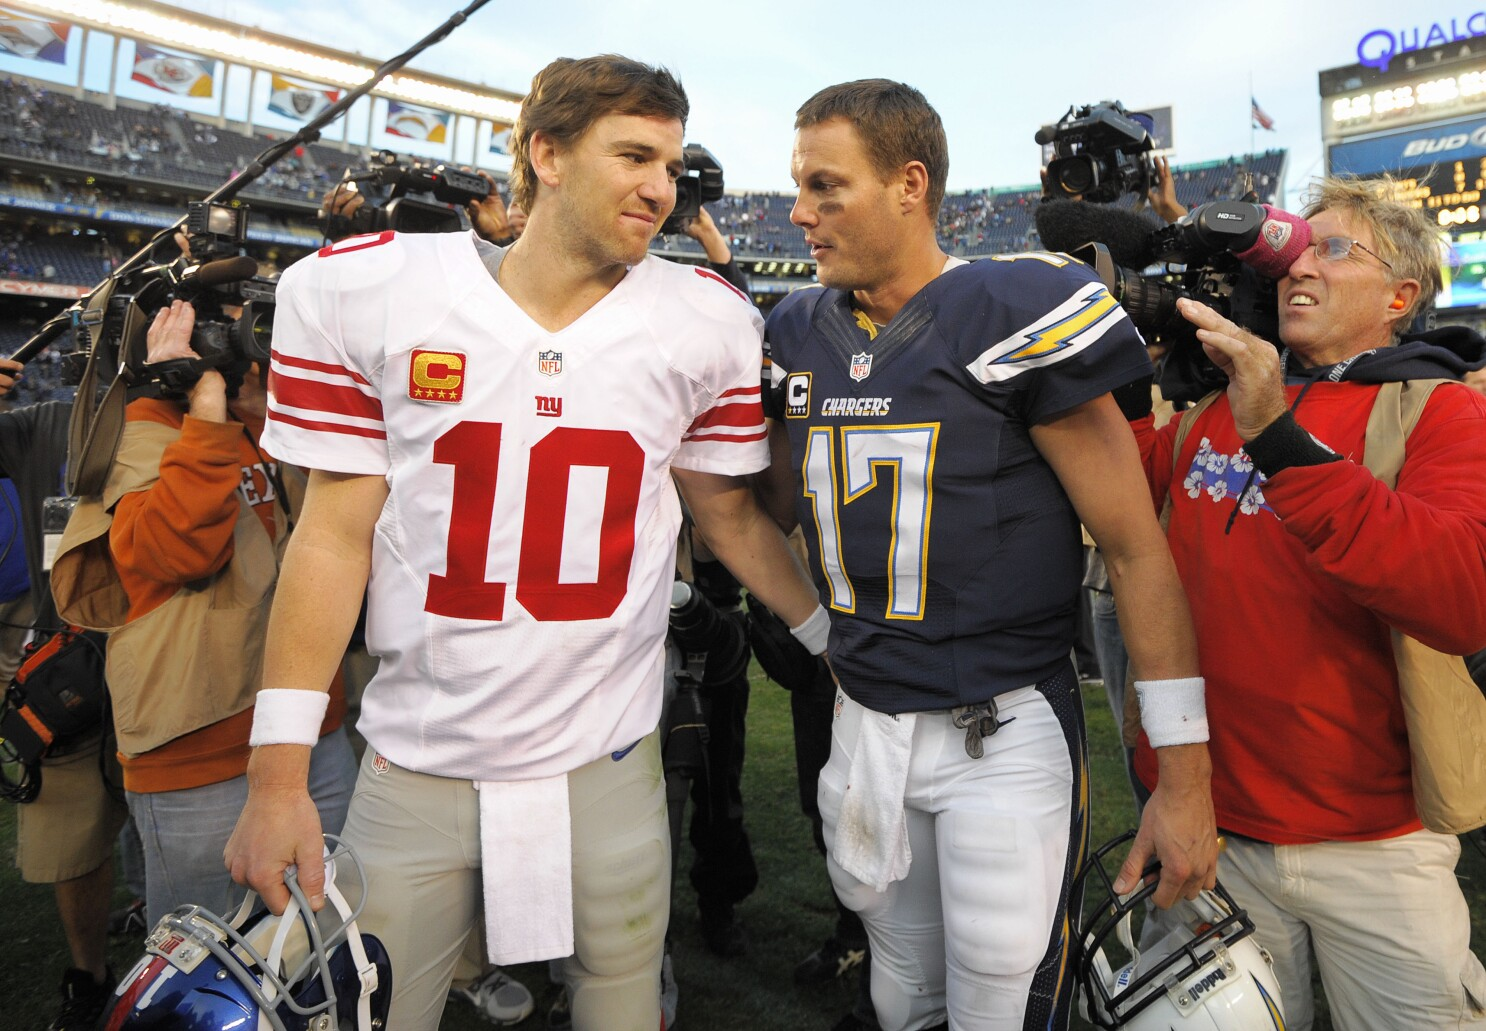 Philip Rivers Wants To Keep Playing After Split With Chargers Los Angeles Times